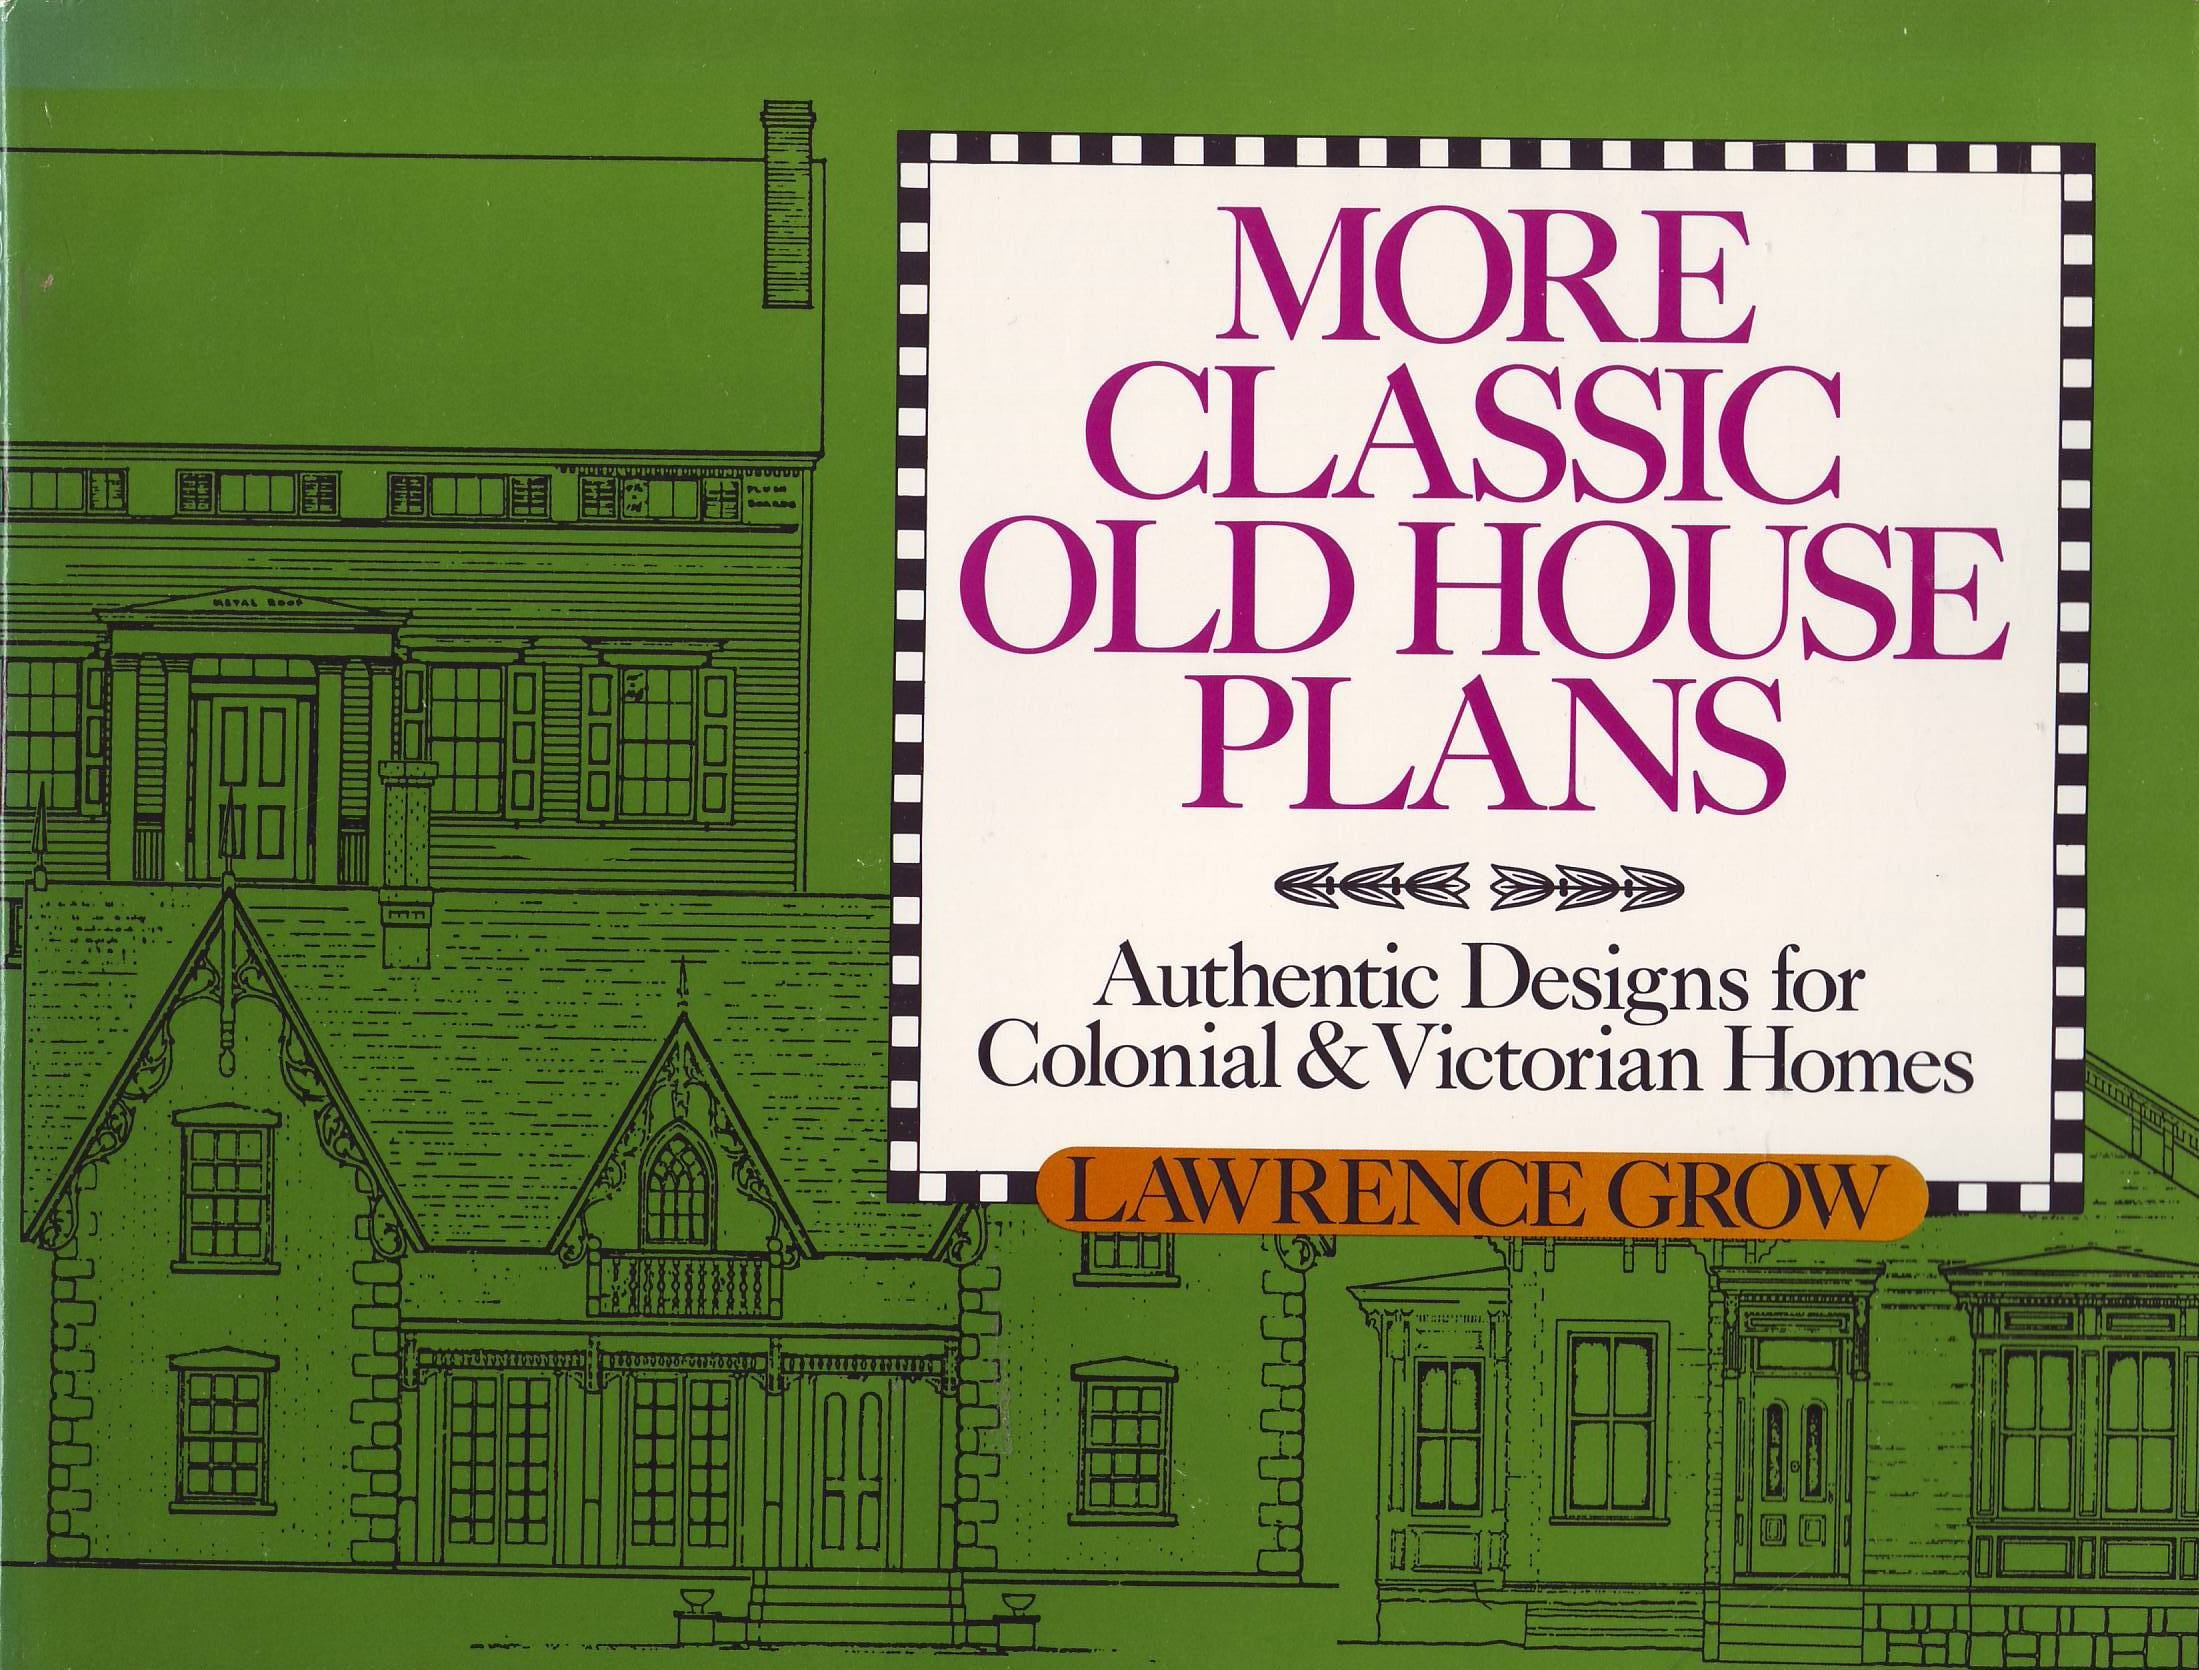 more classic old house plans authentic designs for colonial and more classic old house plans authentic designs for colonial and victorian homes old house book lawrence grow 9780915590865 amazon com books